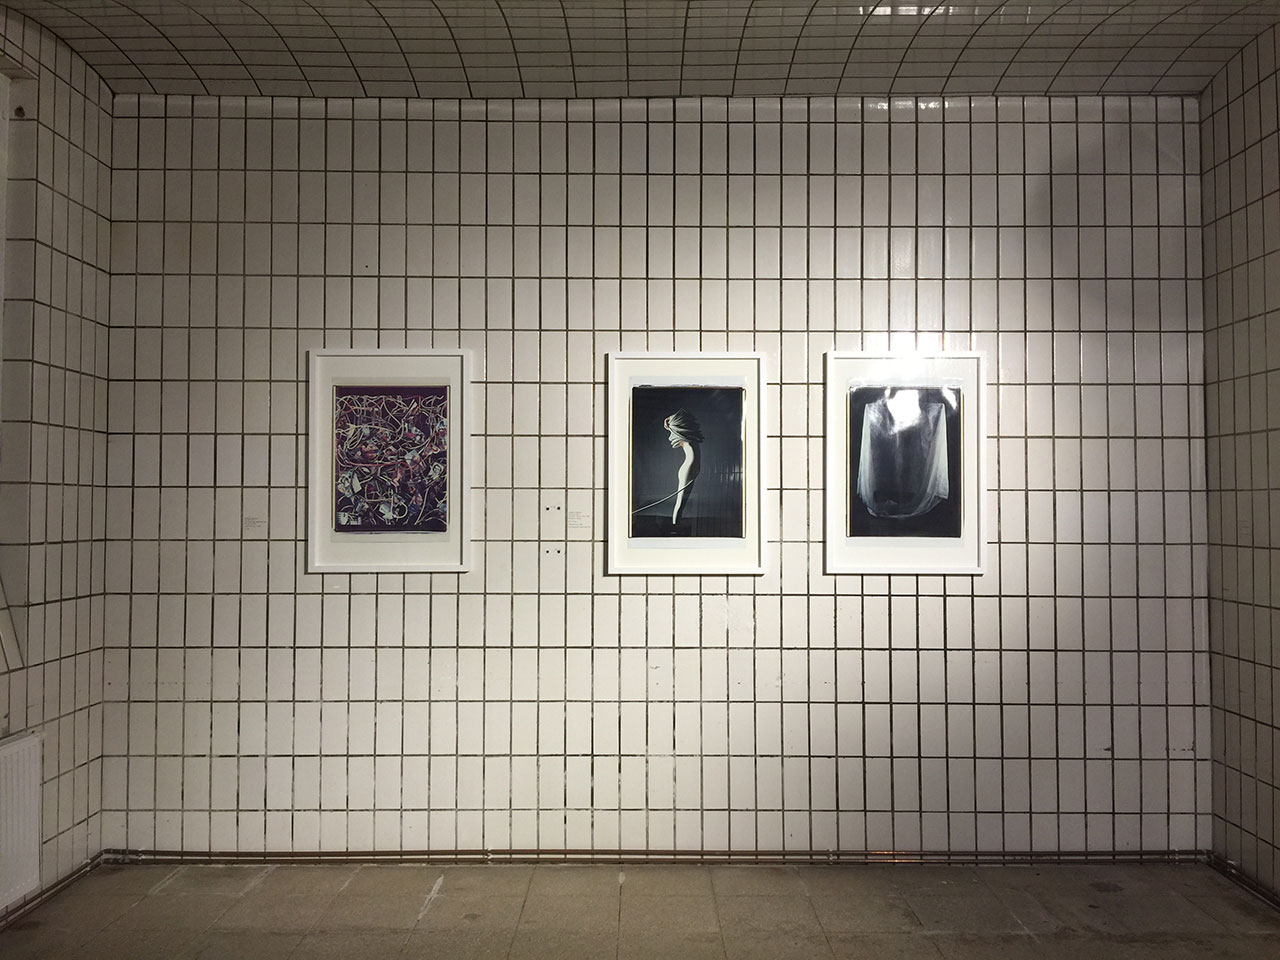 "Installation View from Andrea Jünger Gallery during Open Gallery Night, Vienna Art Week 2016. The basement of Galerie Jünger is a former bakery, completely covered with white tiles. On the wall: photography by Werner Schnelle, from the series ""Mise en Image"", 1982-1986. Photo by Kiriakos Spirou."